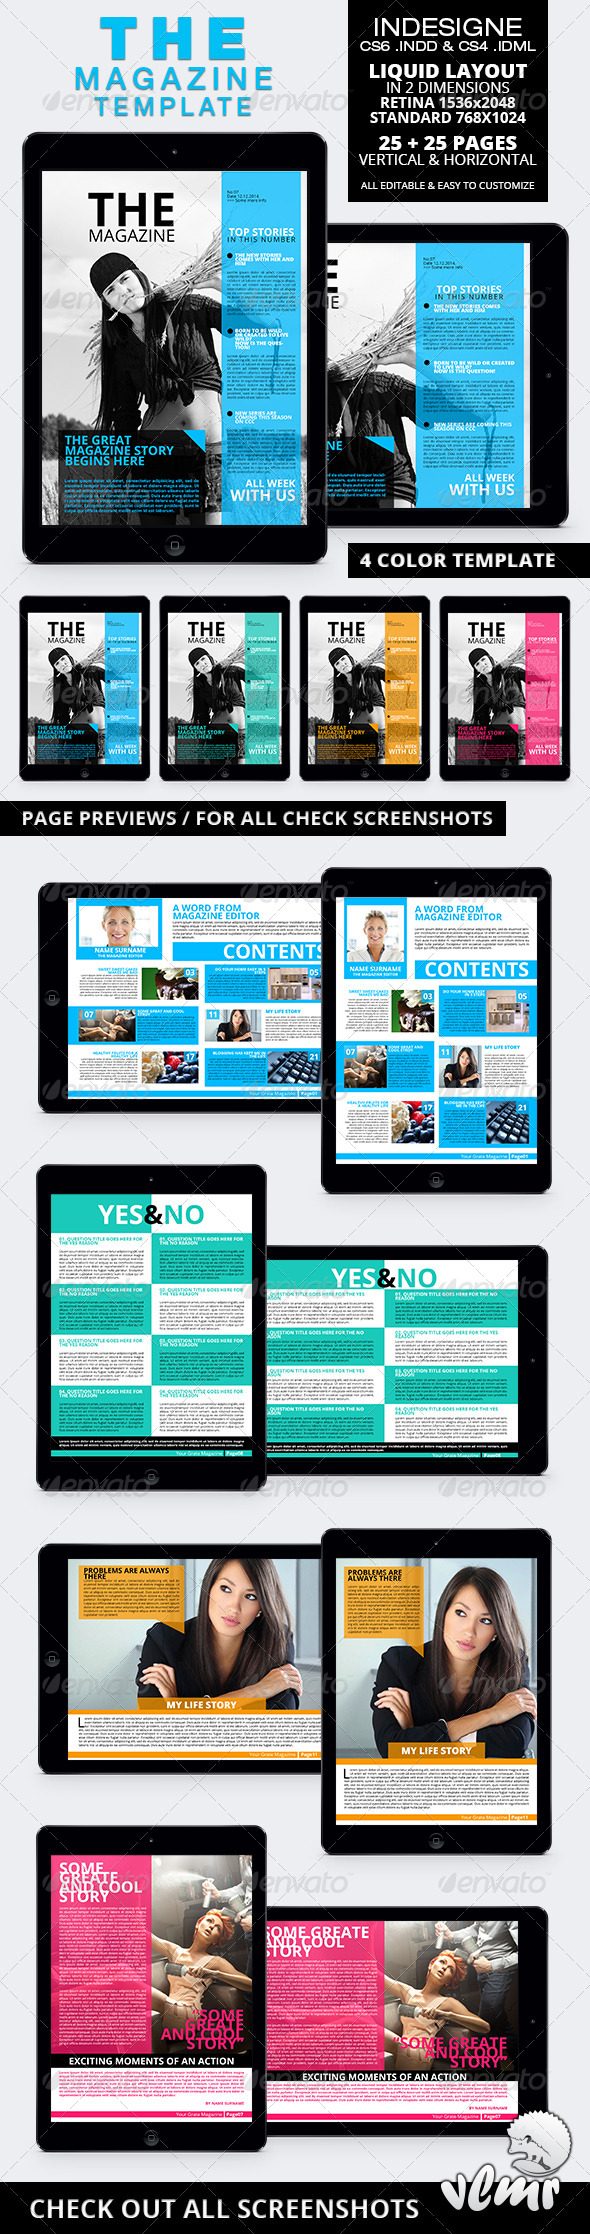 The Magazine Tablet Template - Digital Magazines ePublishing